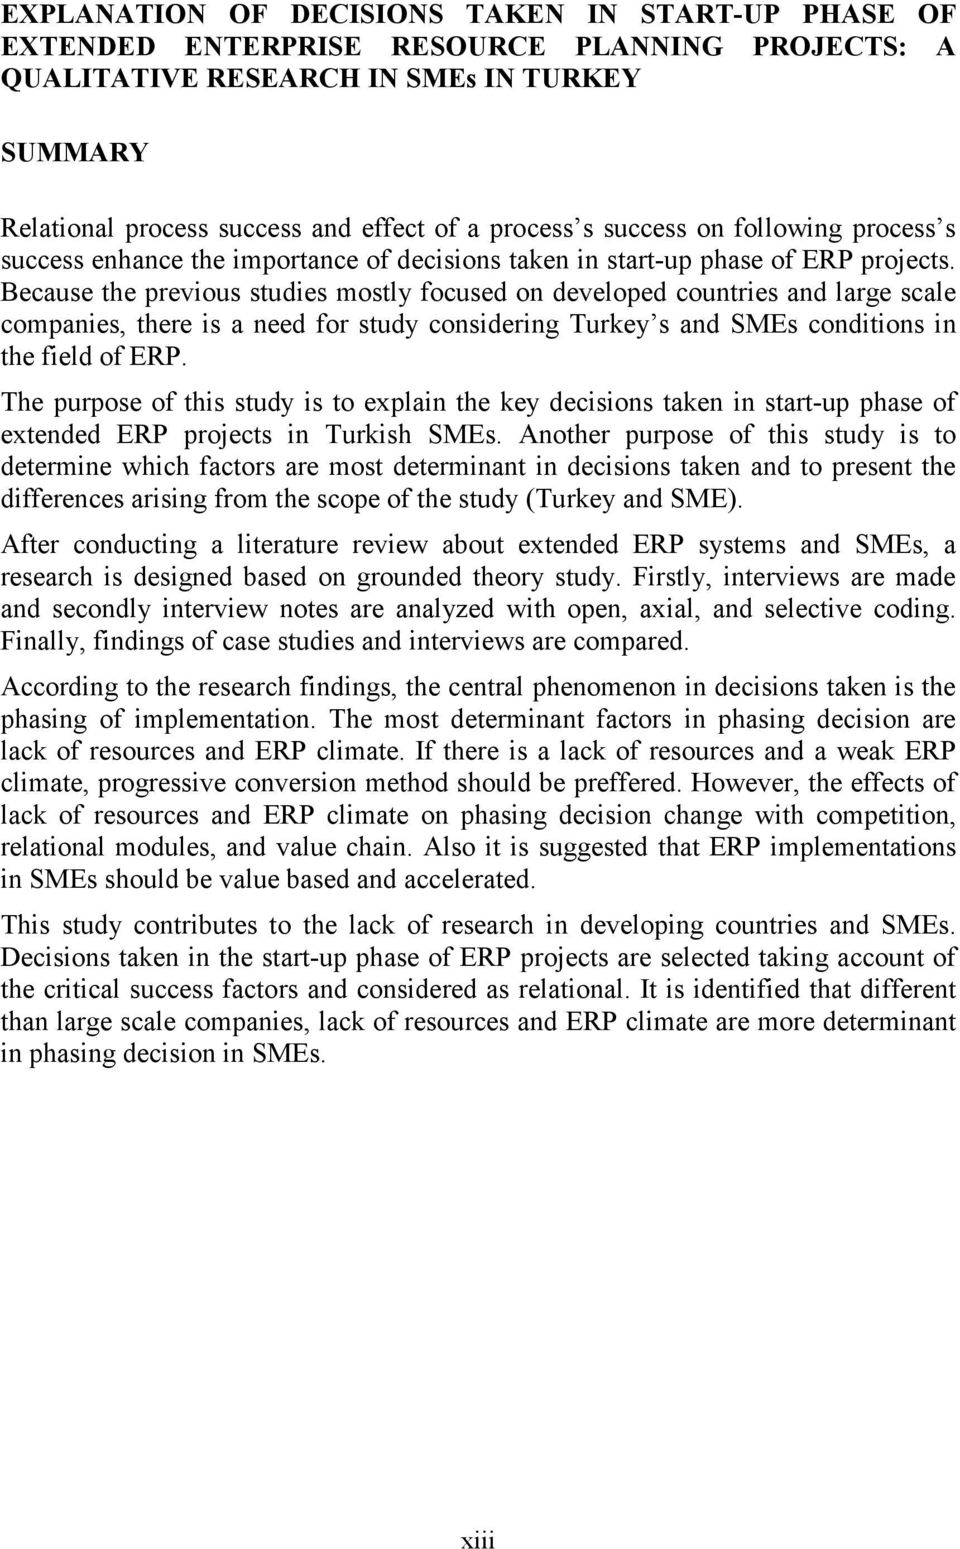 Because the previous studies mostly focused on developed countries and large scale companies, there is a need for study considering Turkey s and SMEs conditions in the field of ERP.